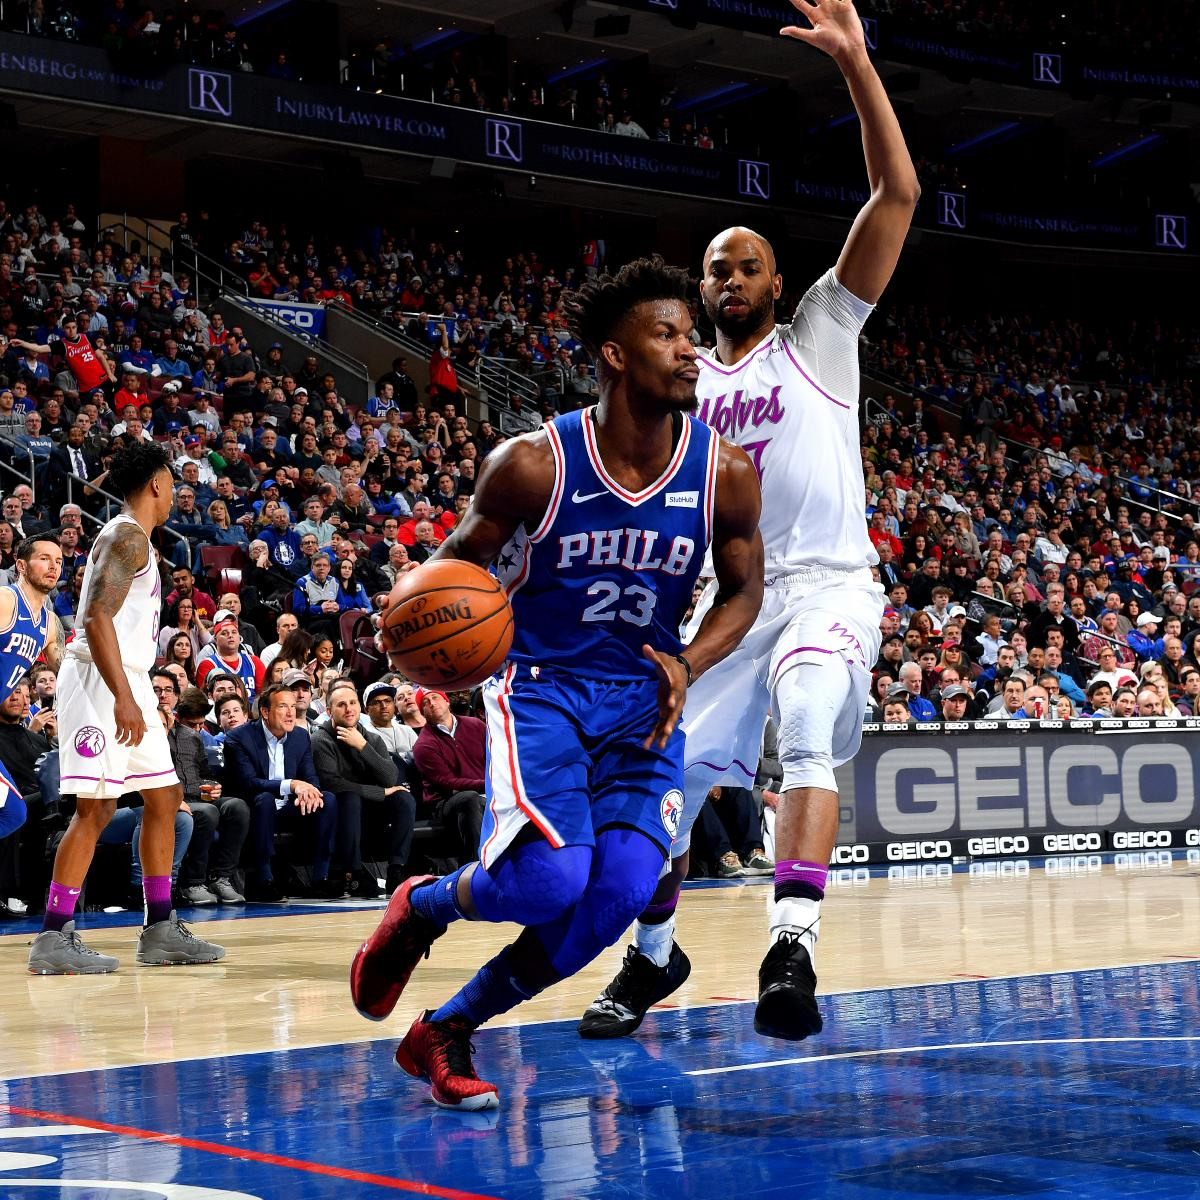 8dab9c2b468e 76ers Dominate Timberwolves 149-107 in Jimmy Butler s 1st Game Against  Minnesota